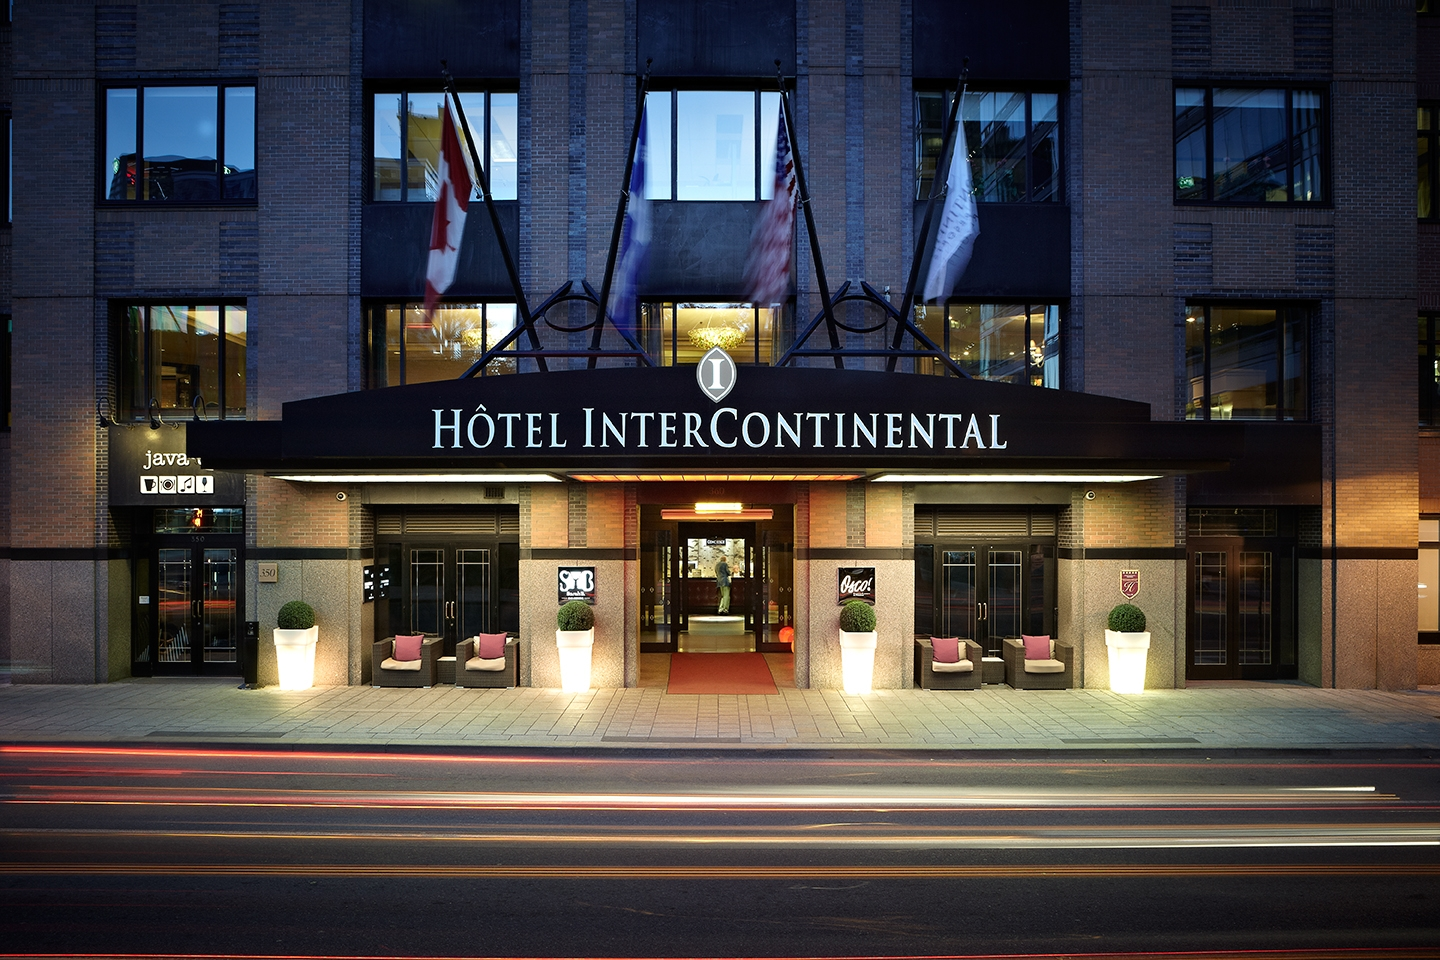 Hôtel InterContinental<br>1991